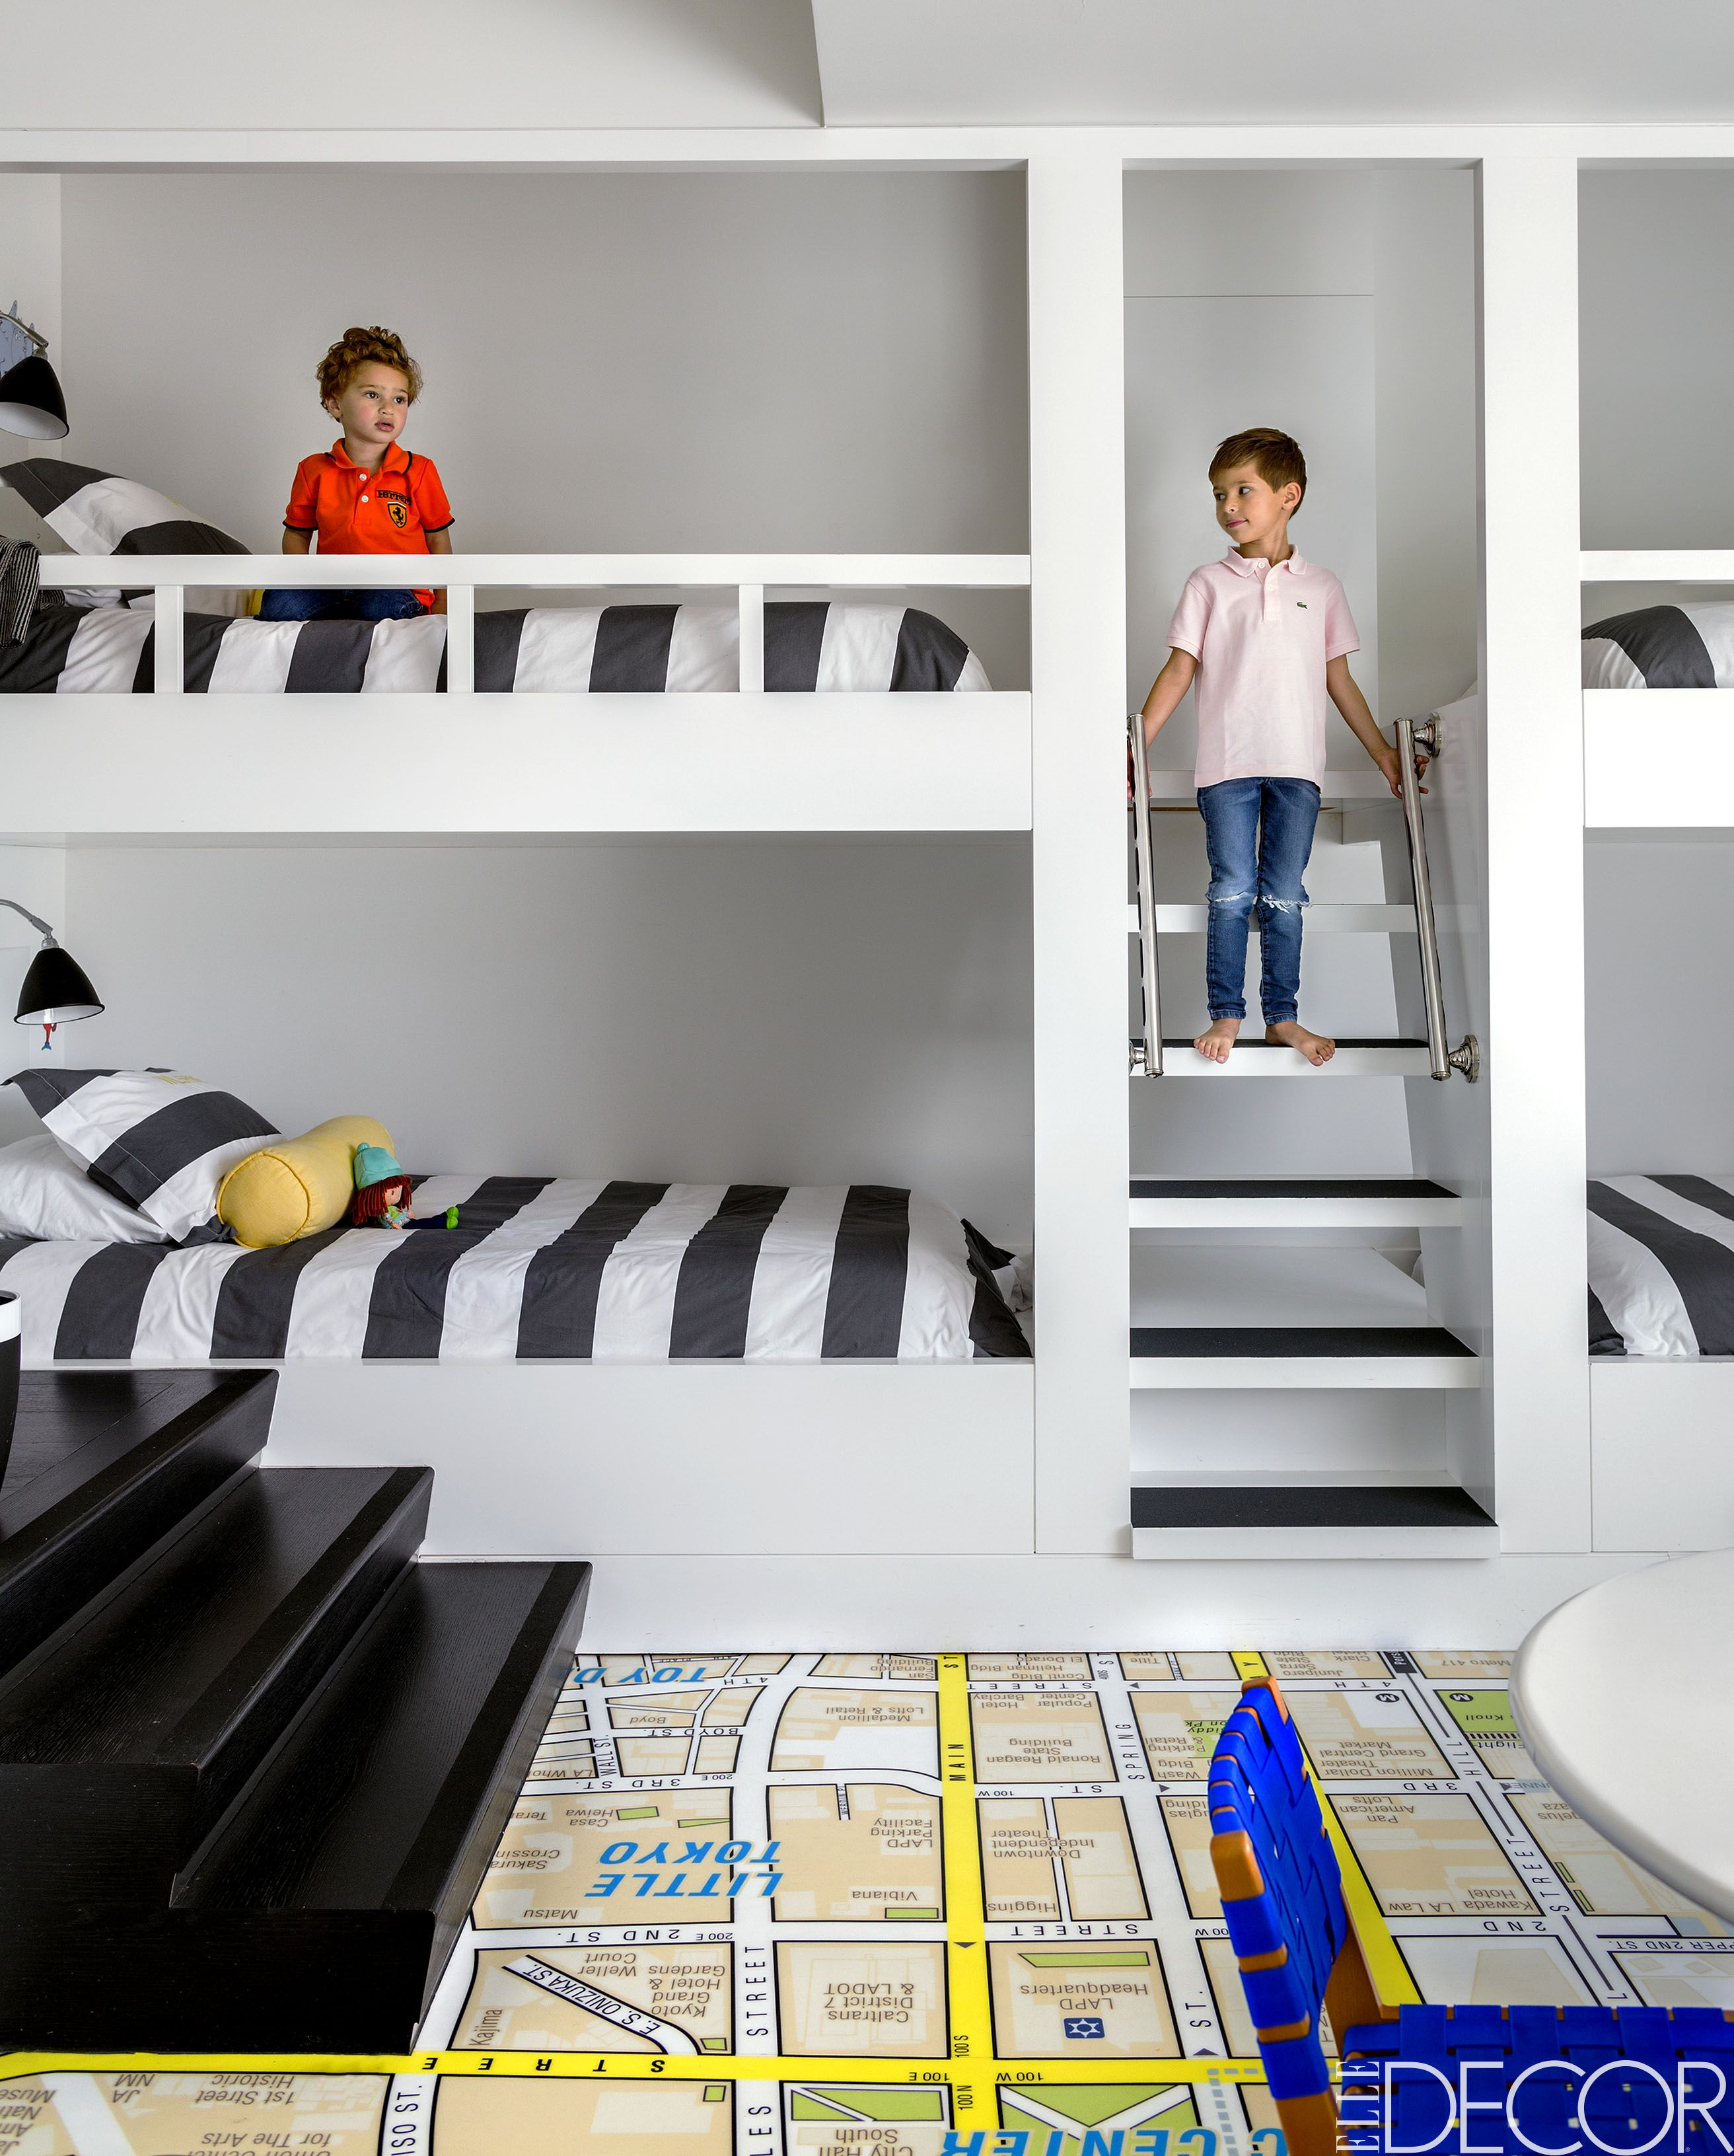 20 great bedroom ideas for boys - decorating a chic and youthful space FFYGPXP